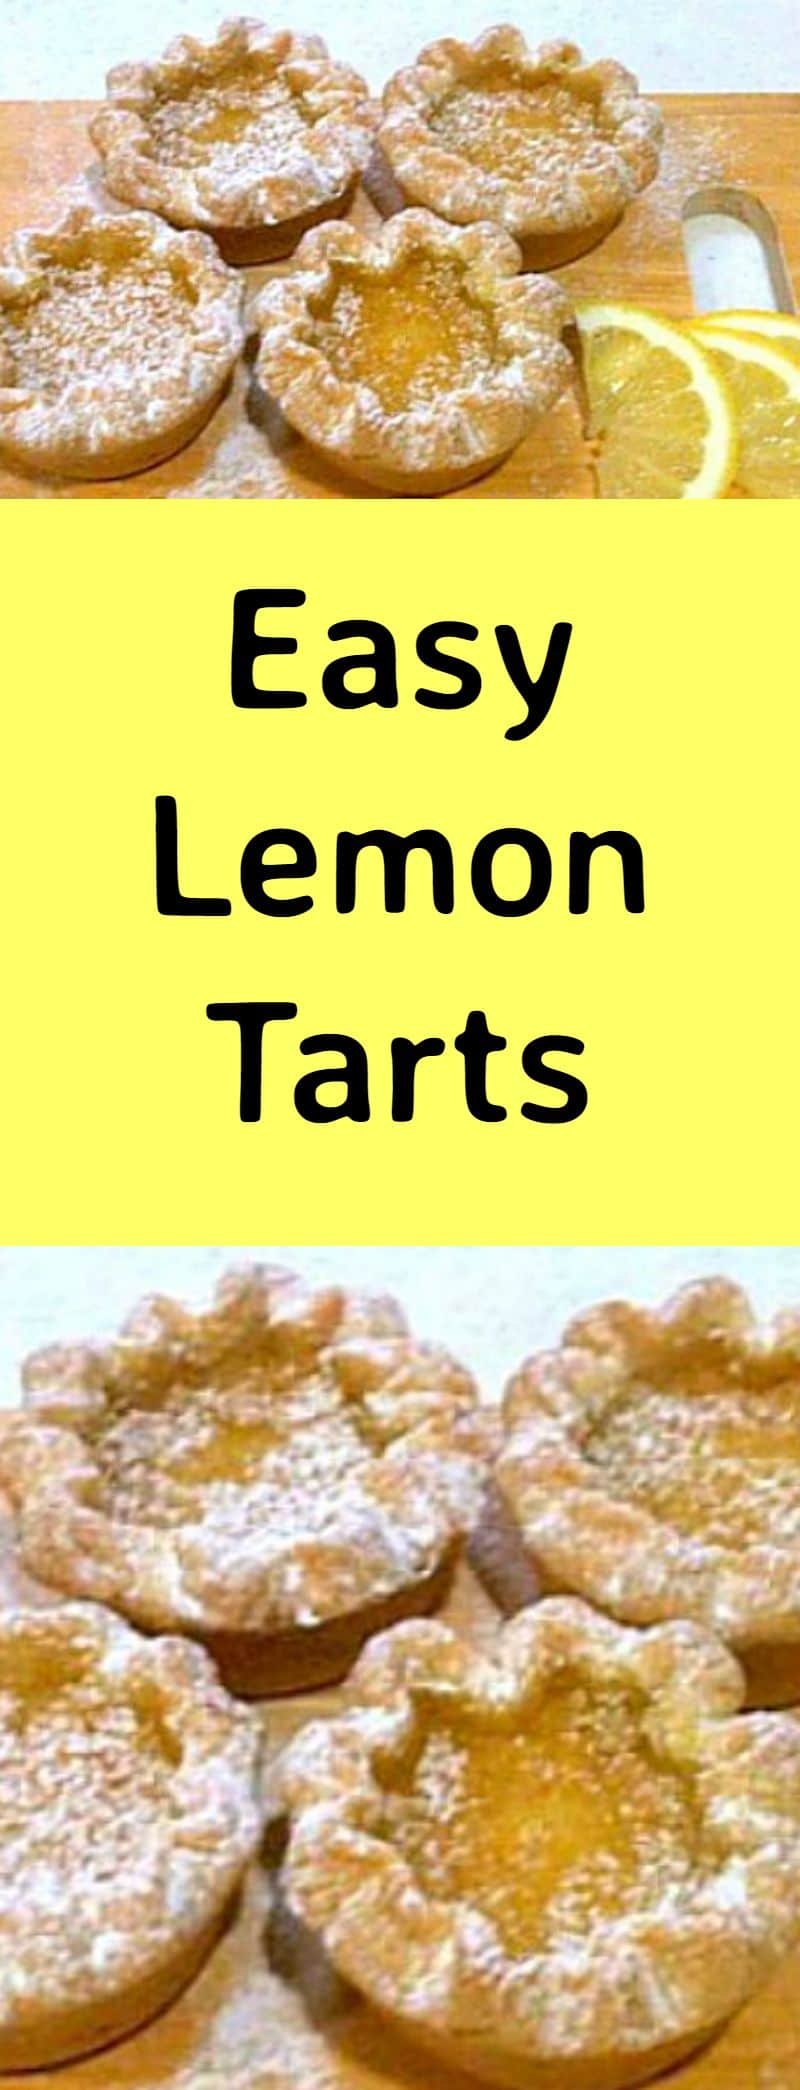 Easy Lemon Tarts. A very easy recipe and freezer friendly too!